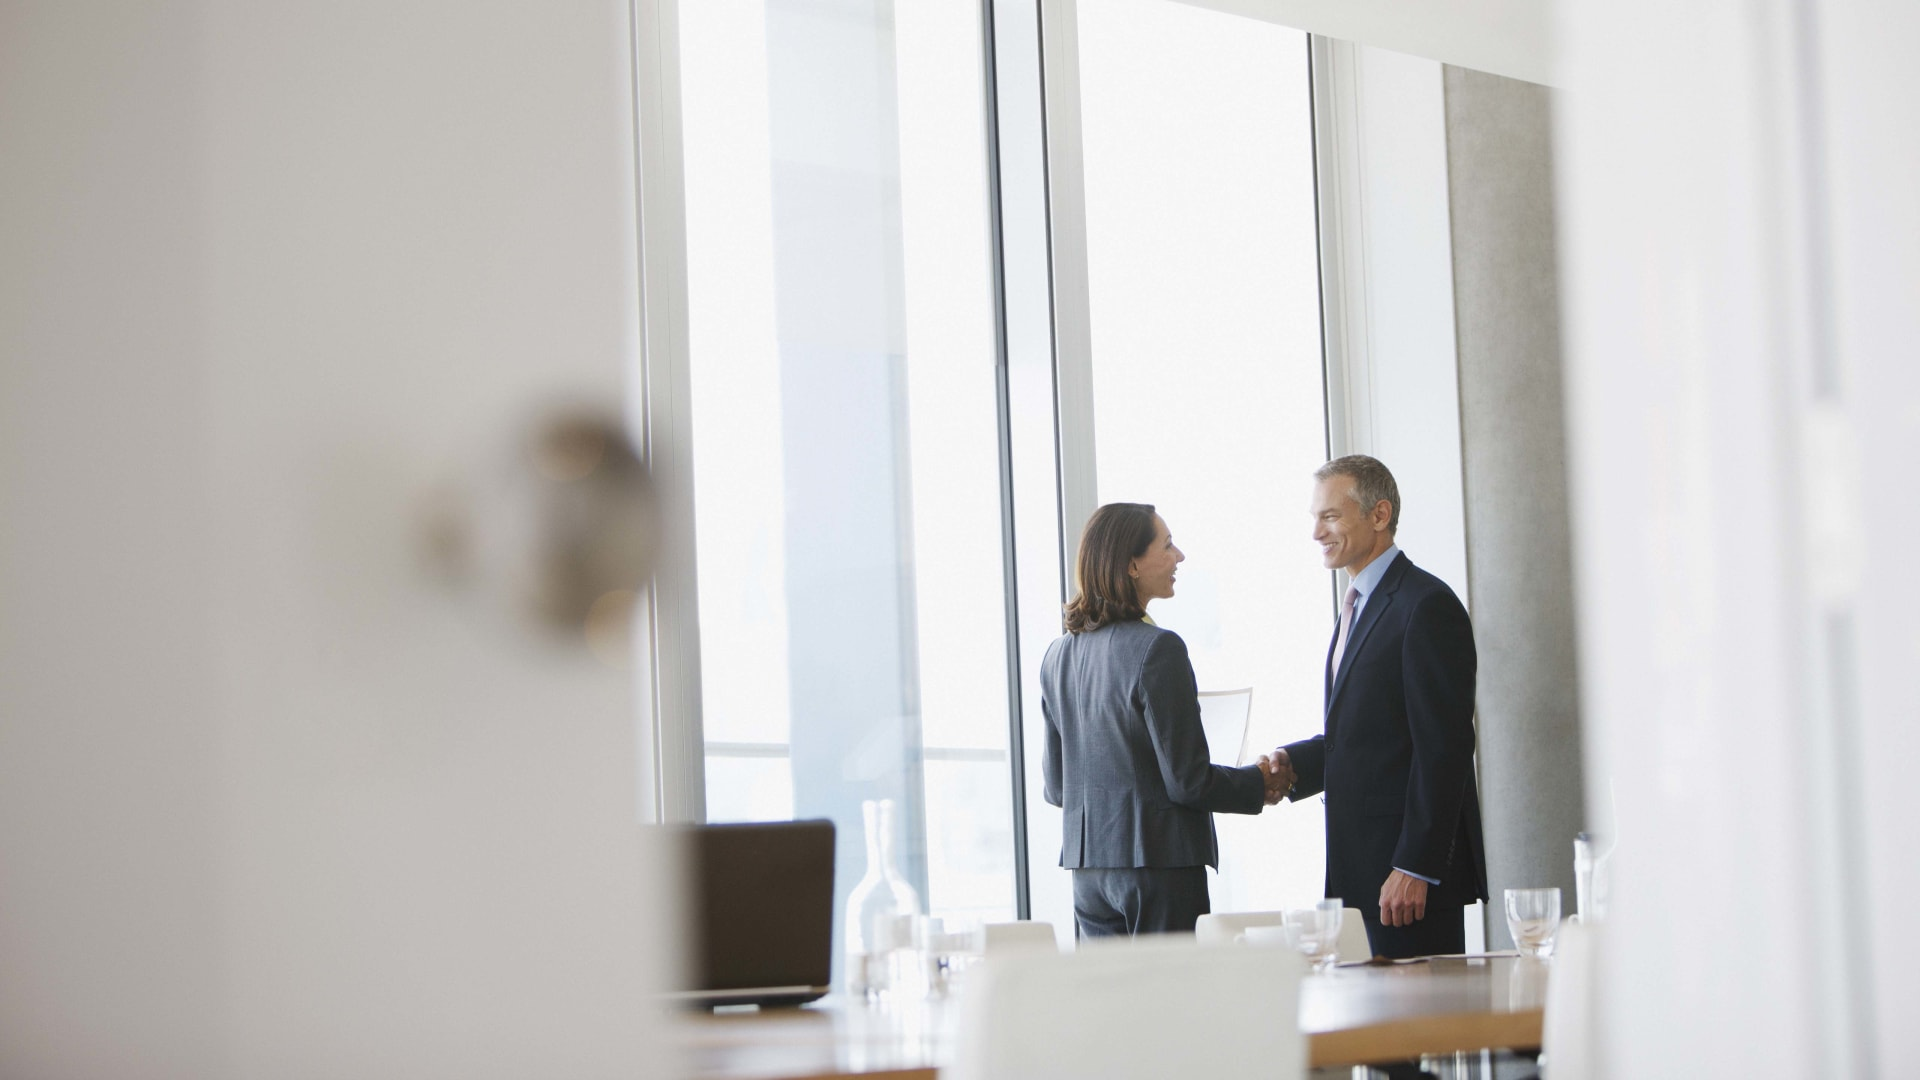 The No. 1 Rule of Emotional Intelligence to Help Drive More Sales